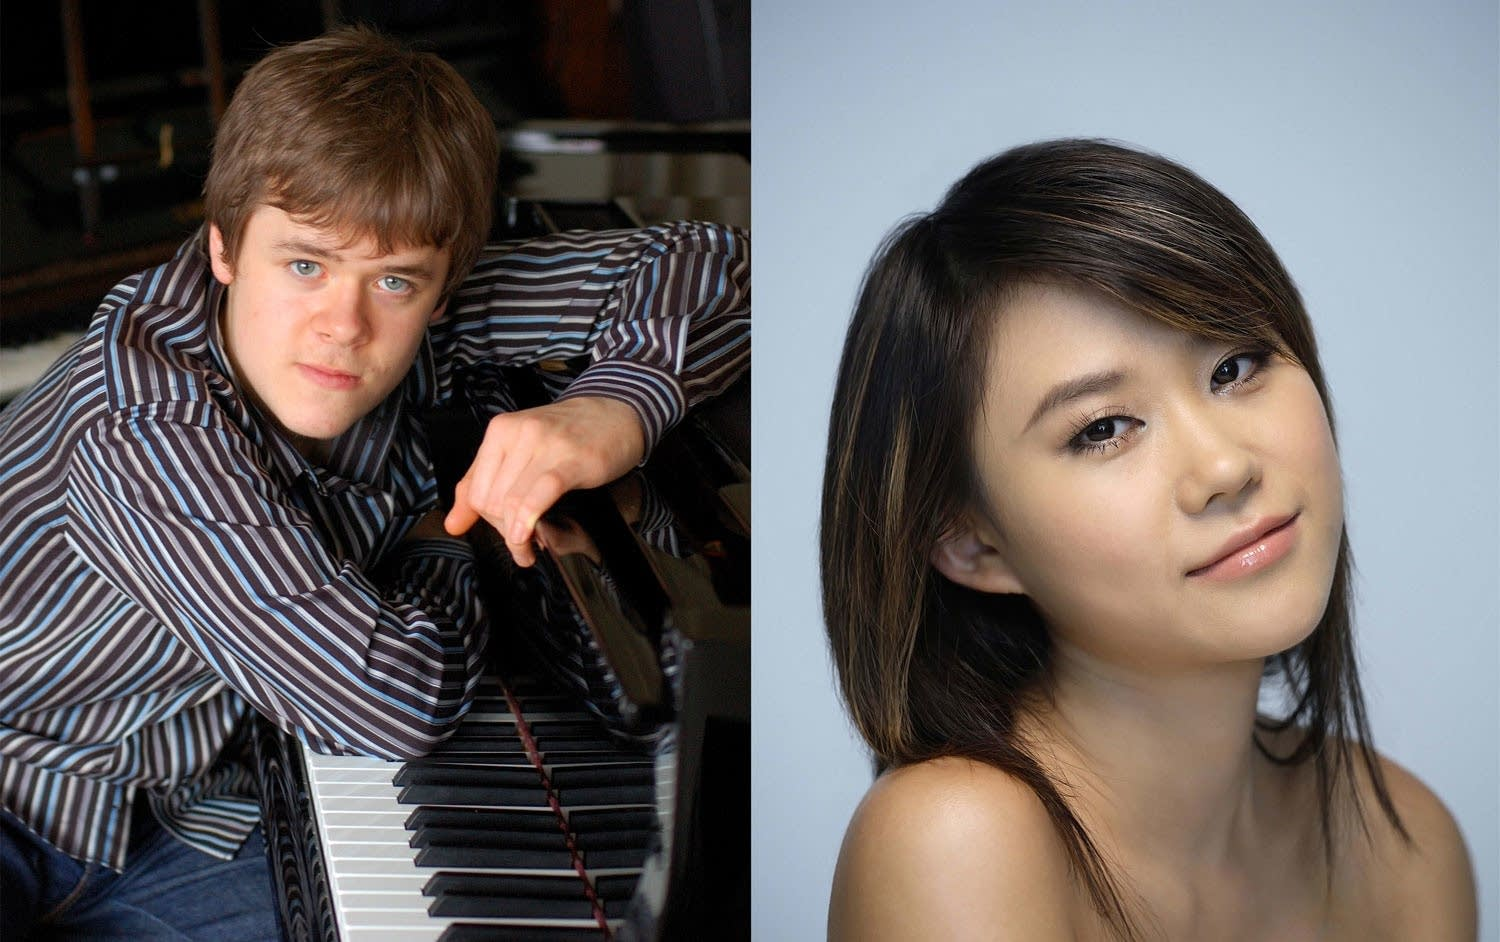 Benjamin Grosvenor and Yuja Wang